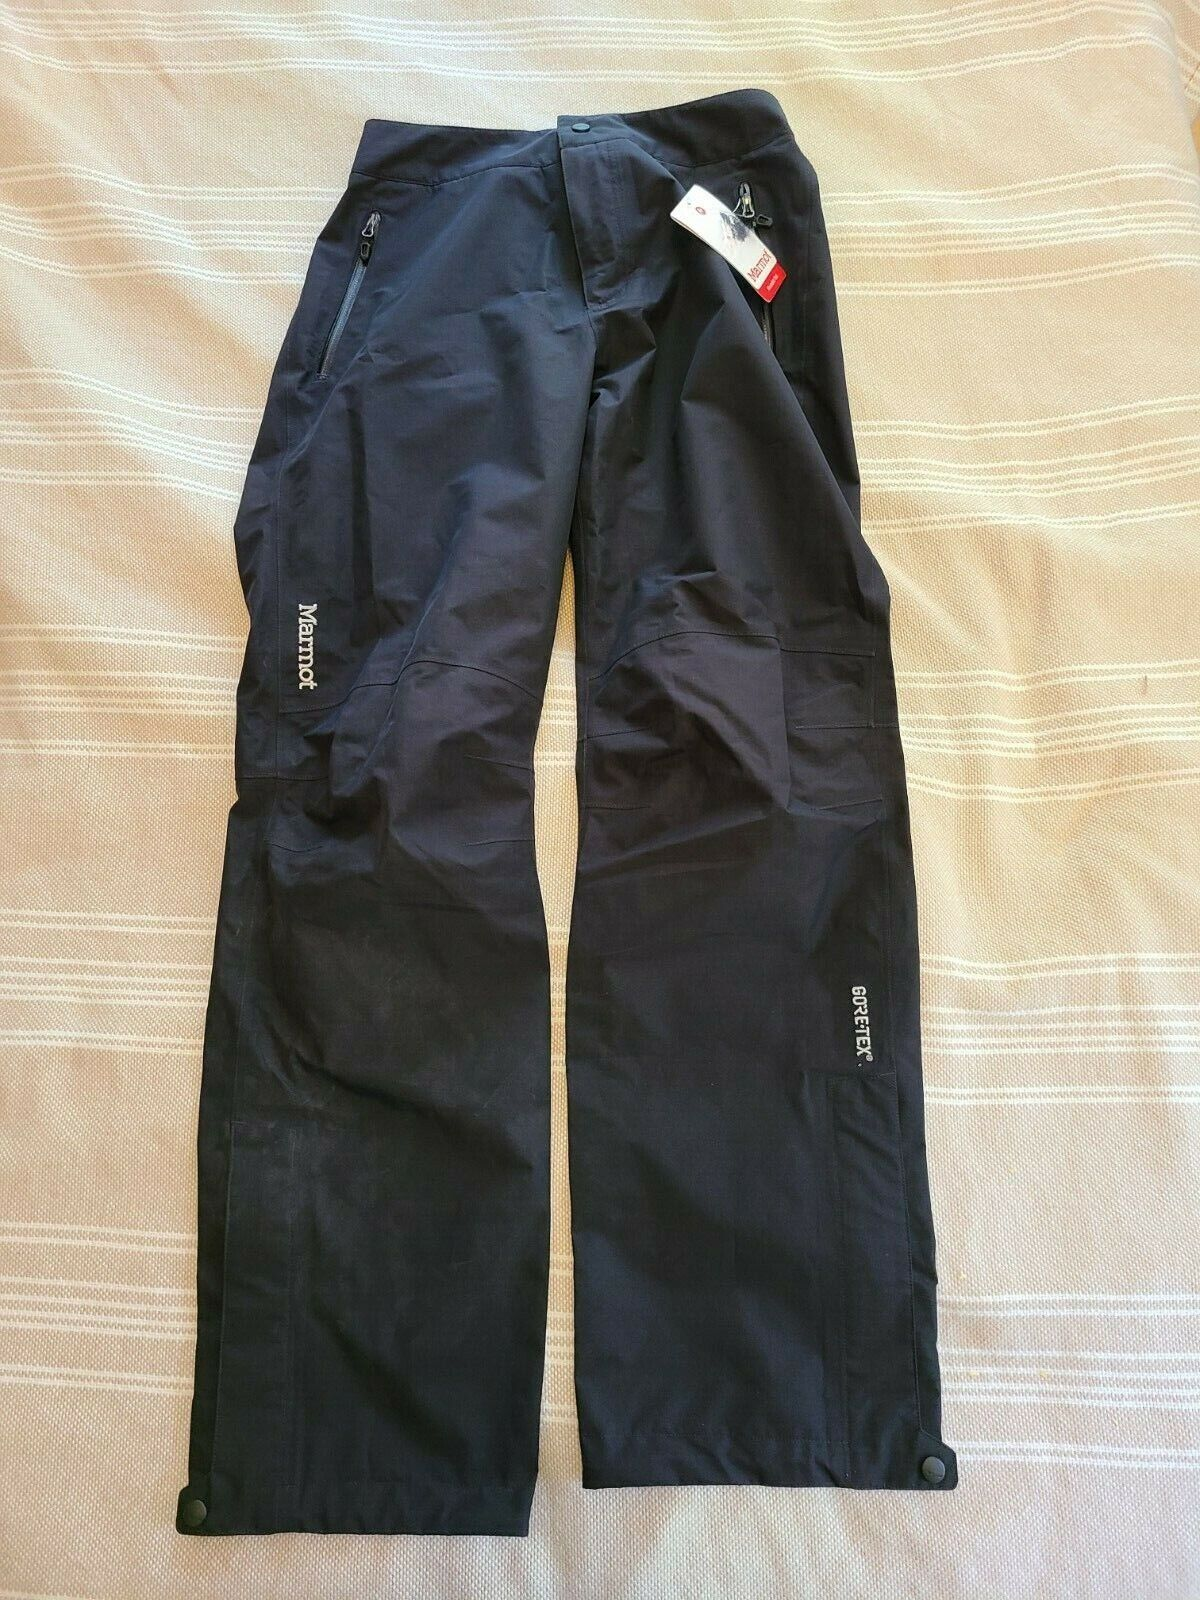 Marmot Men's Minimalist Pants Gore Tex, size medium